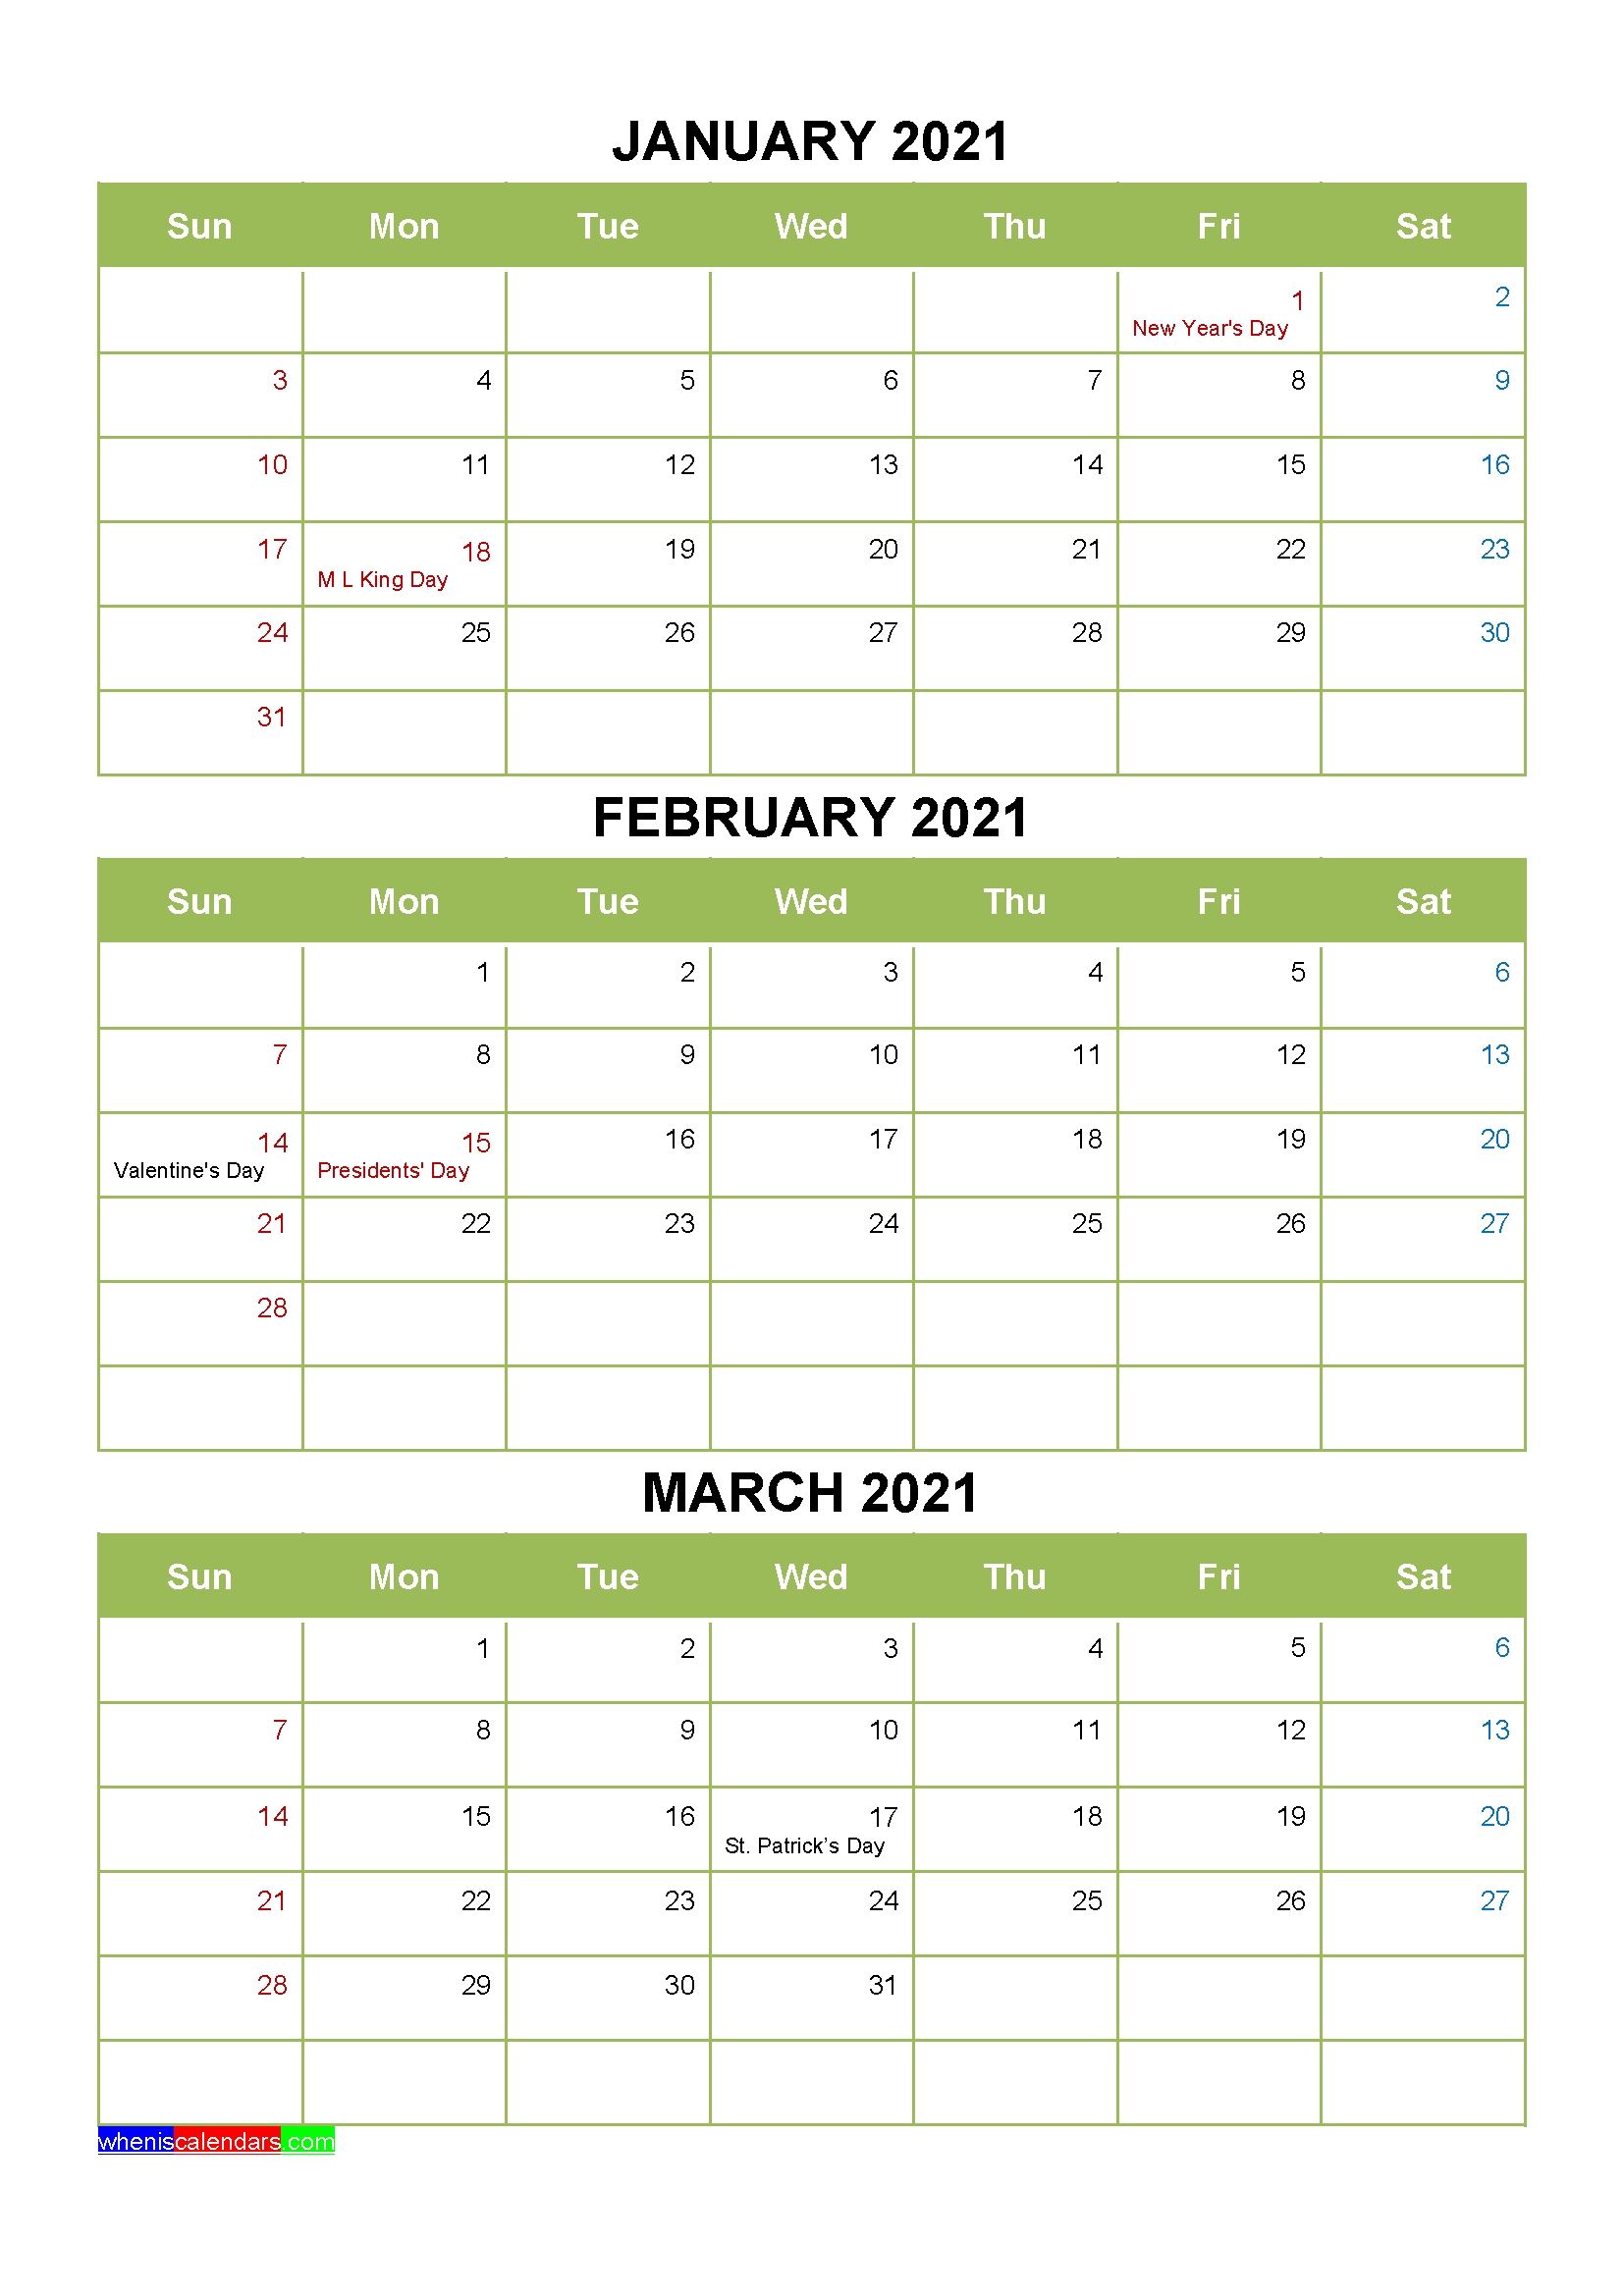 Free Printable January February March 2021 Calendar 3 Months